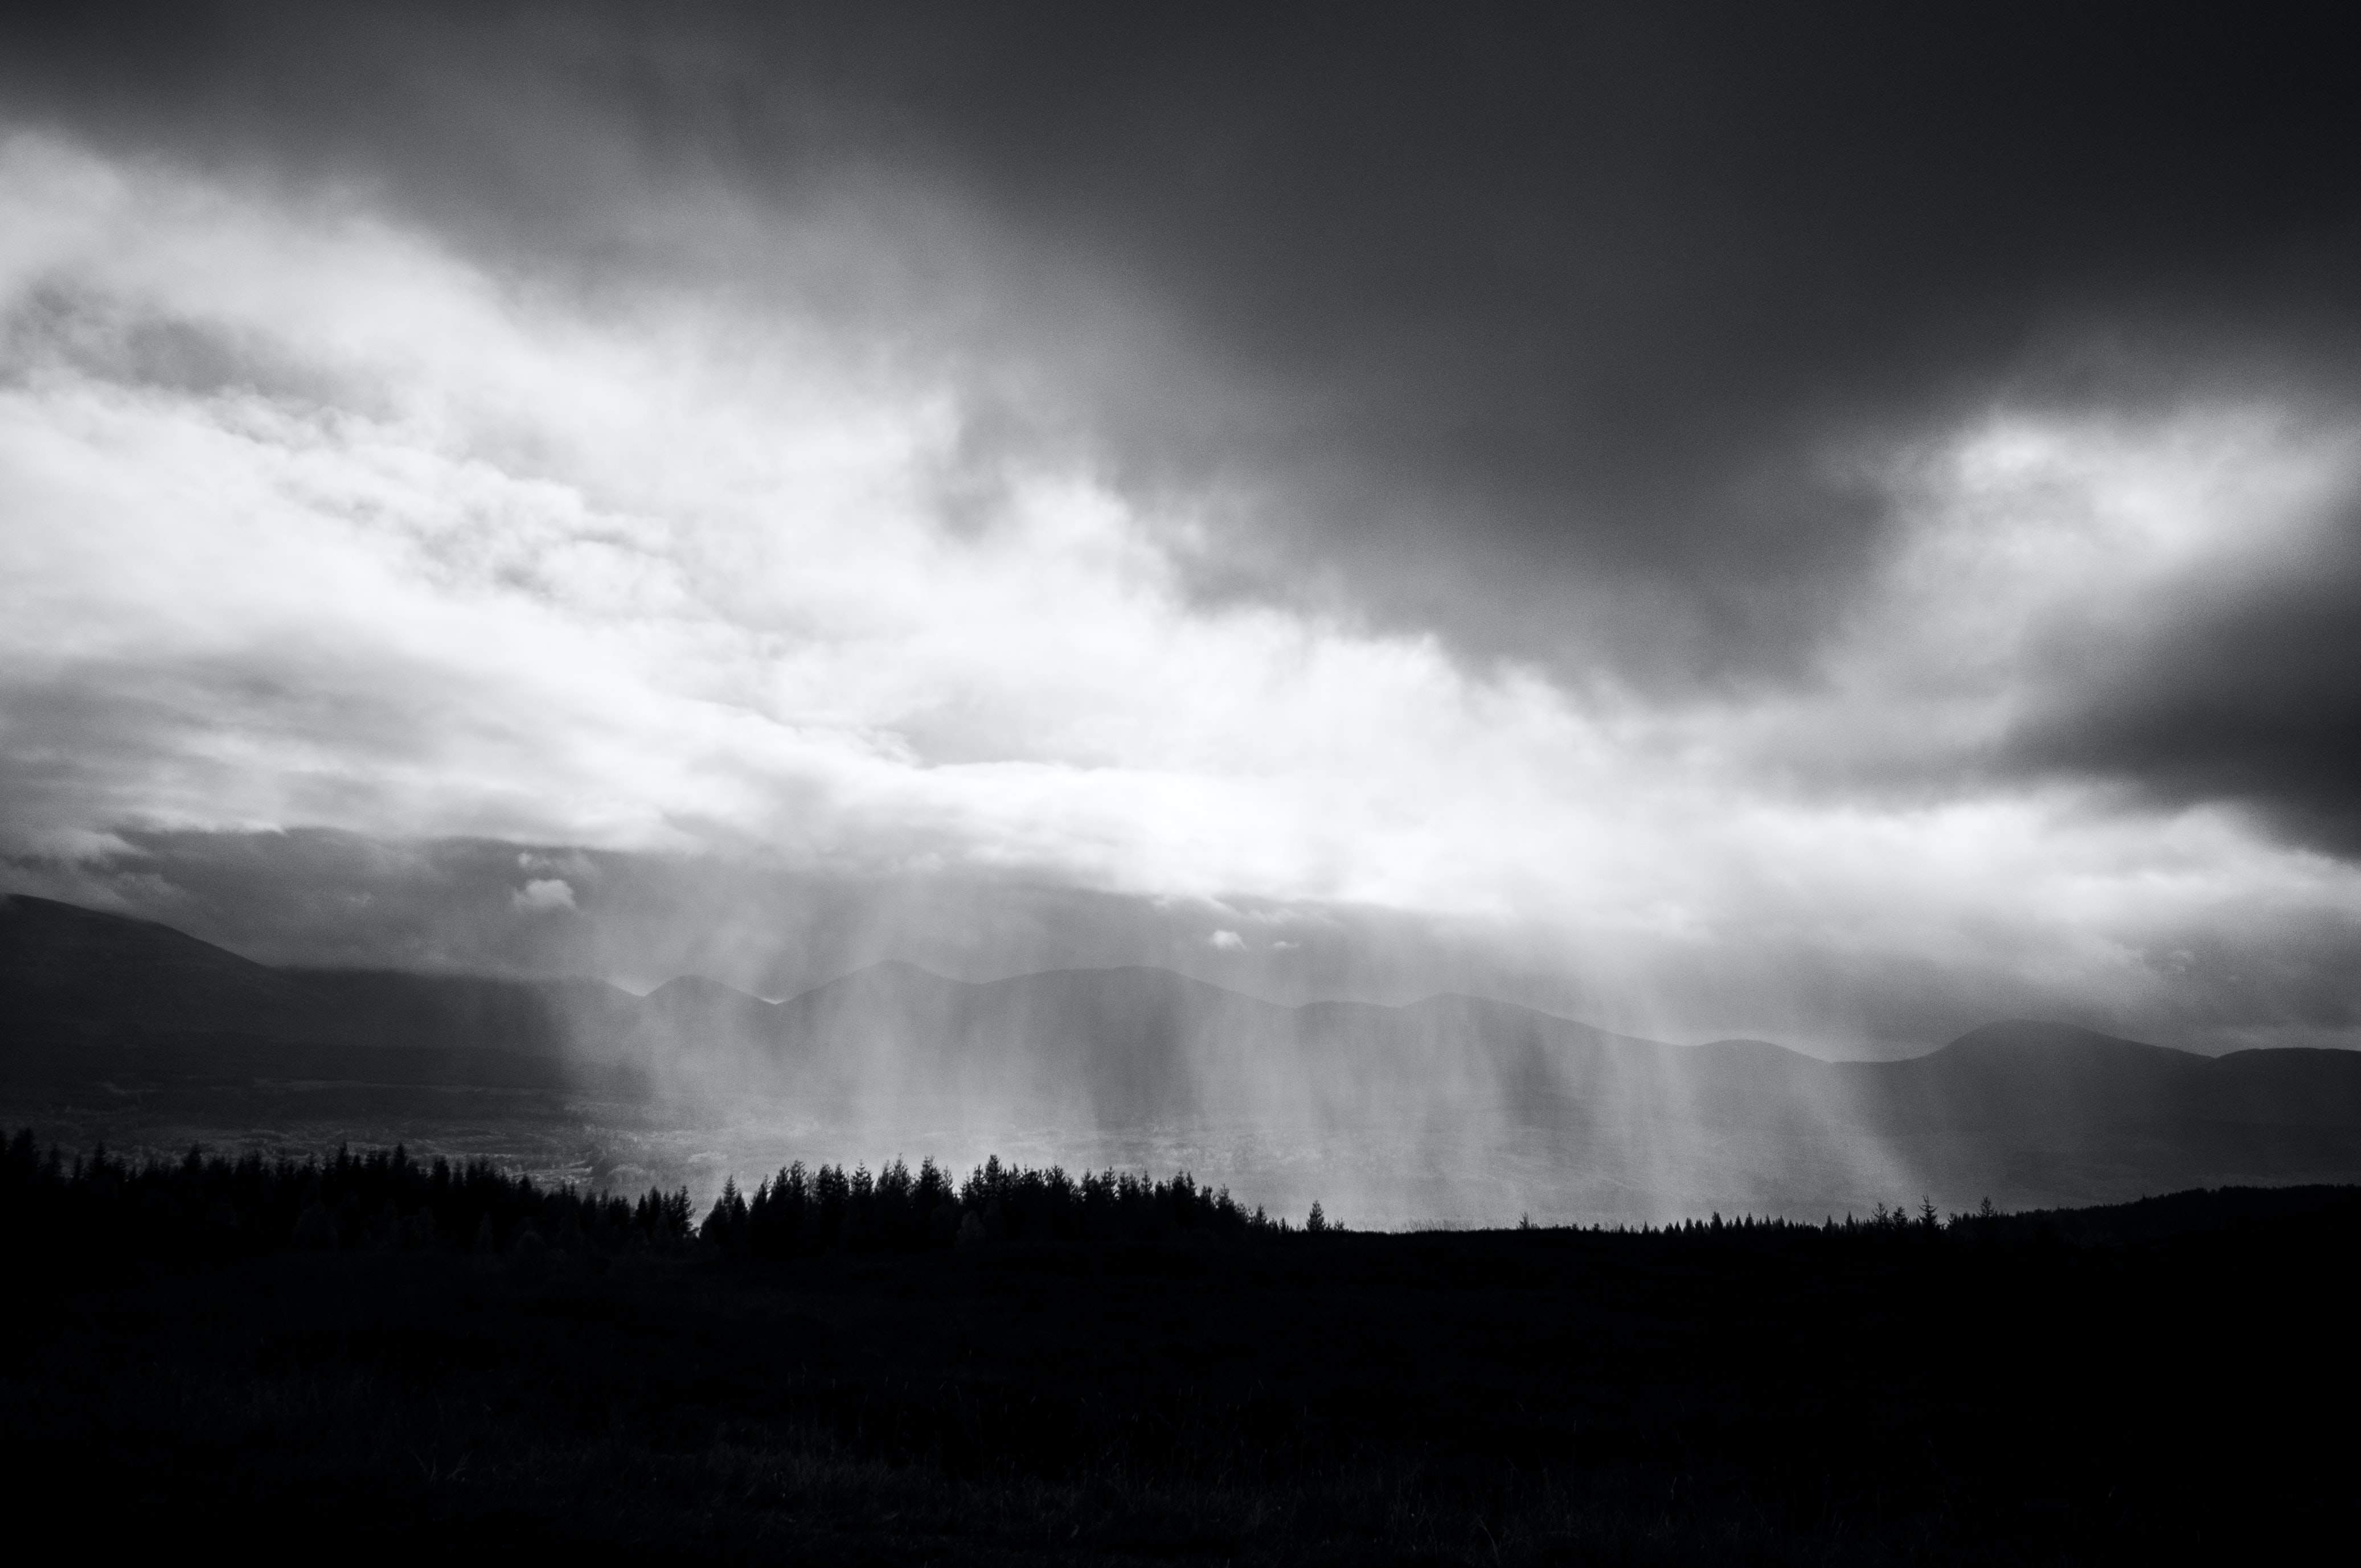 A black and white photo of heavy rain clouds over a lake